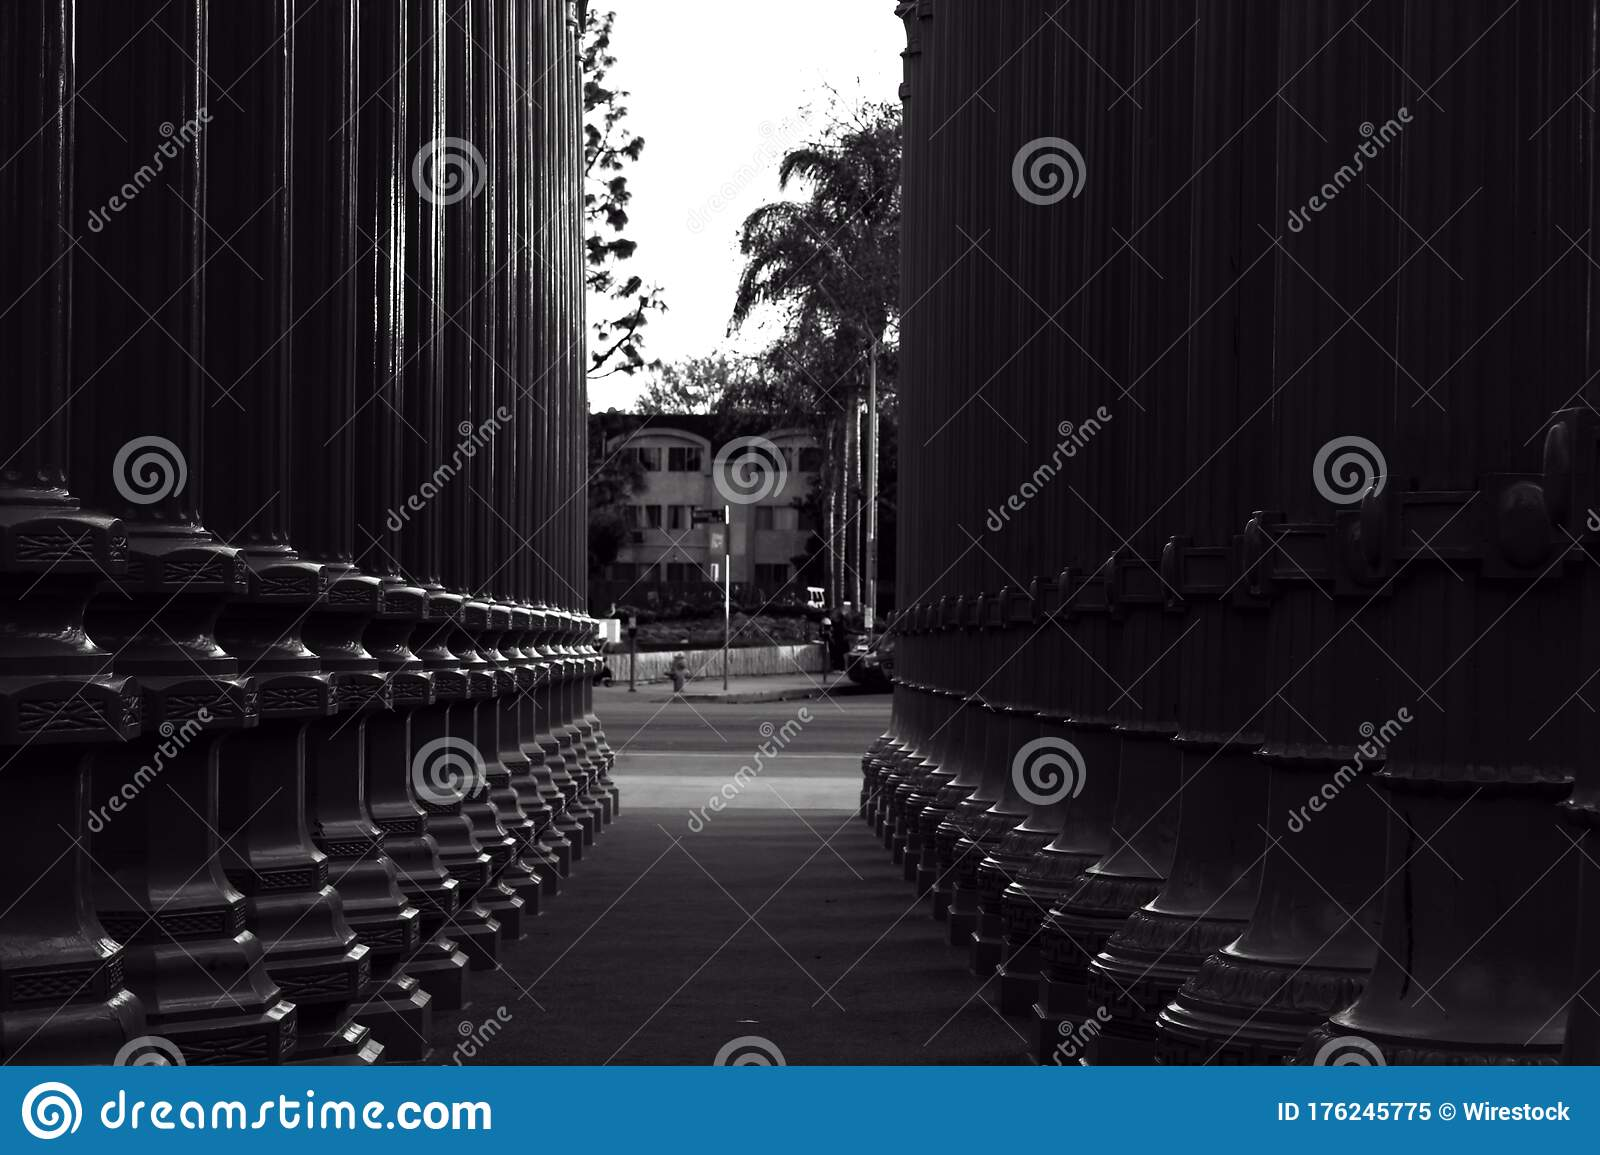 1 143 Greyscale Art Photos Free Royalty Free Stock Photos From Dreamstime